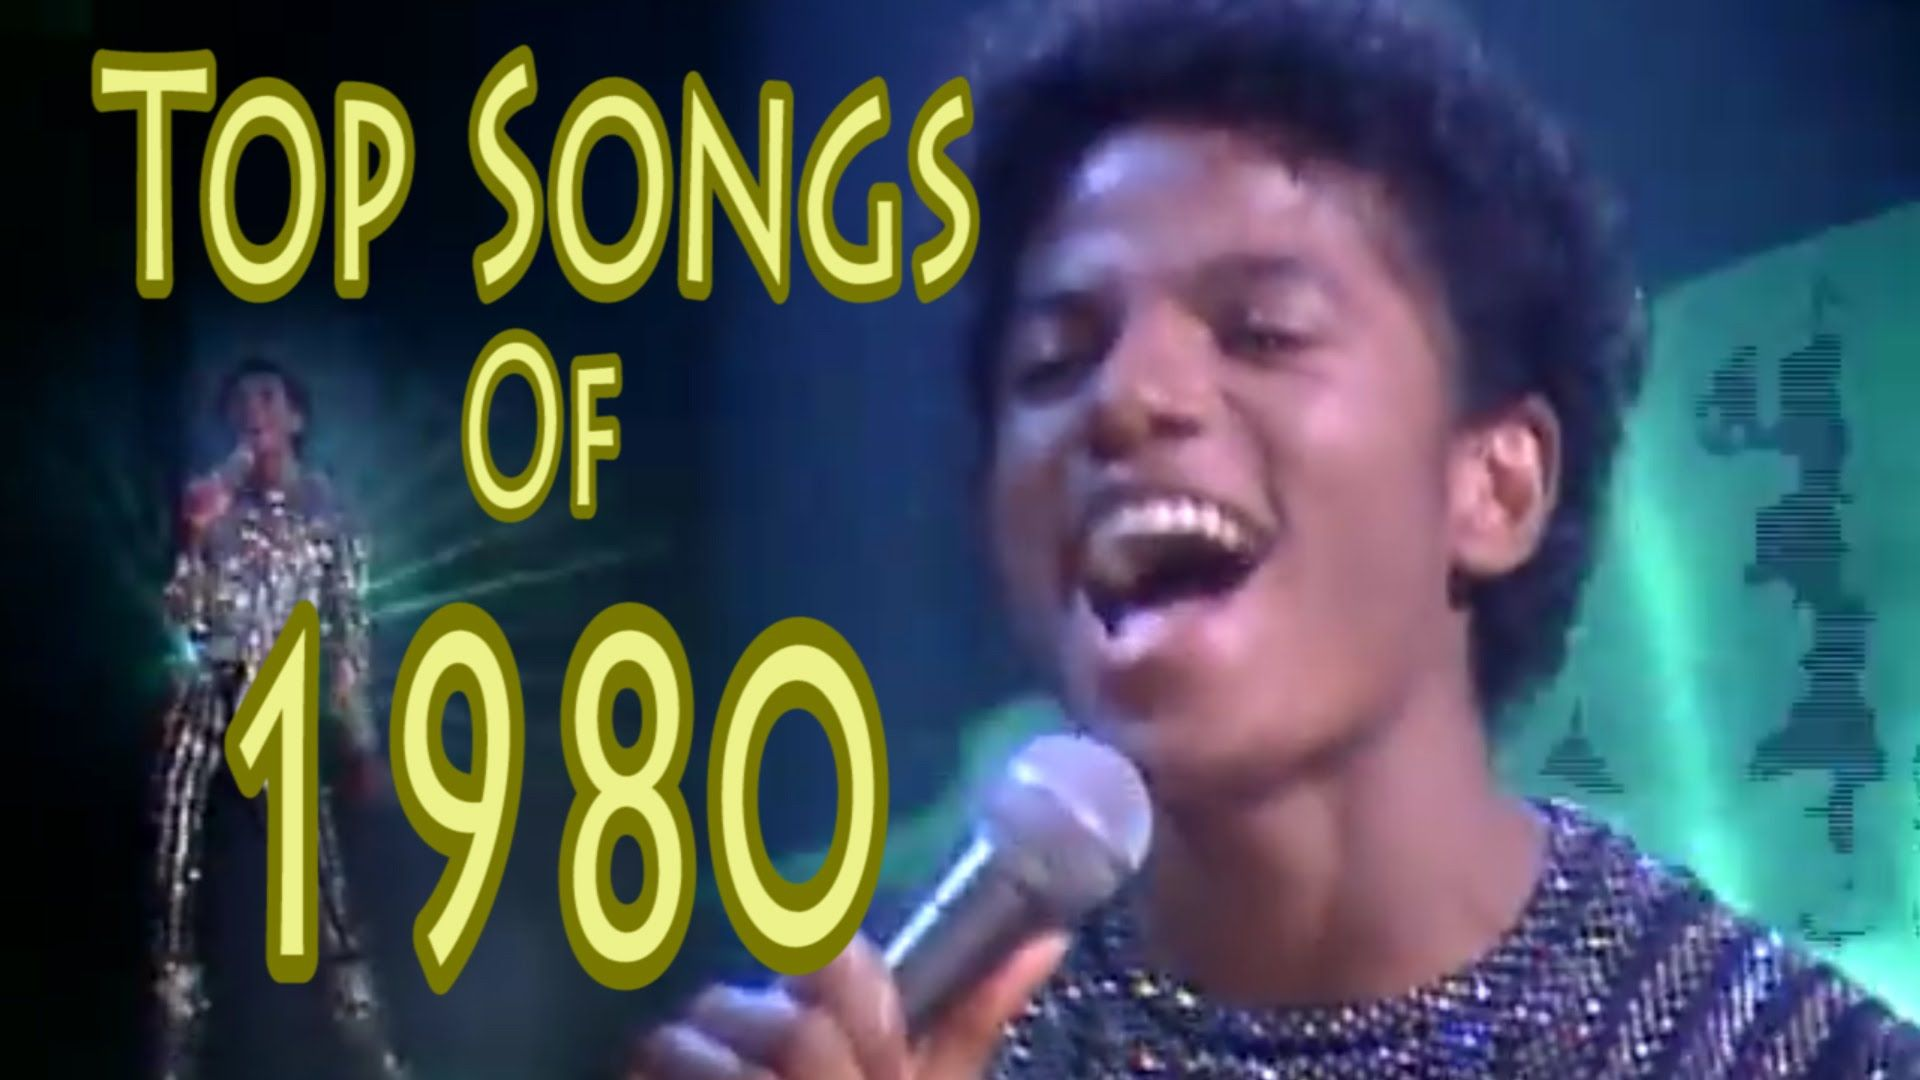 Top Songs Of 1980